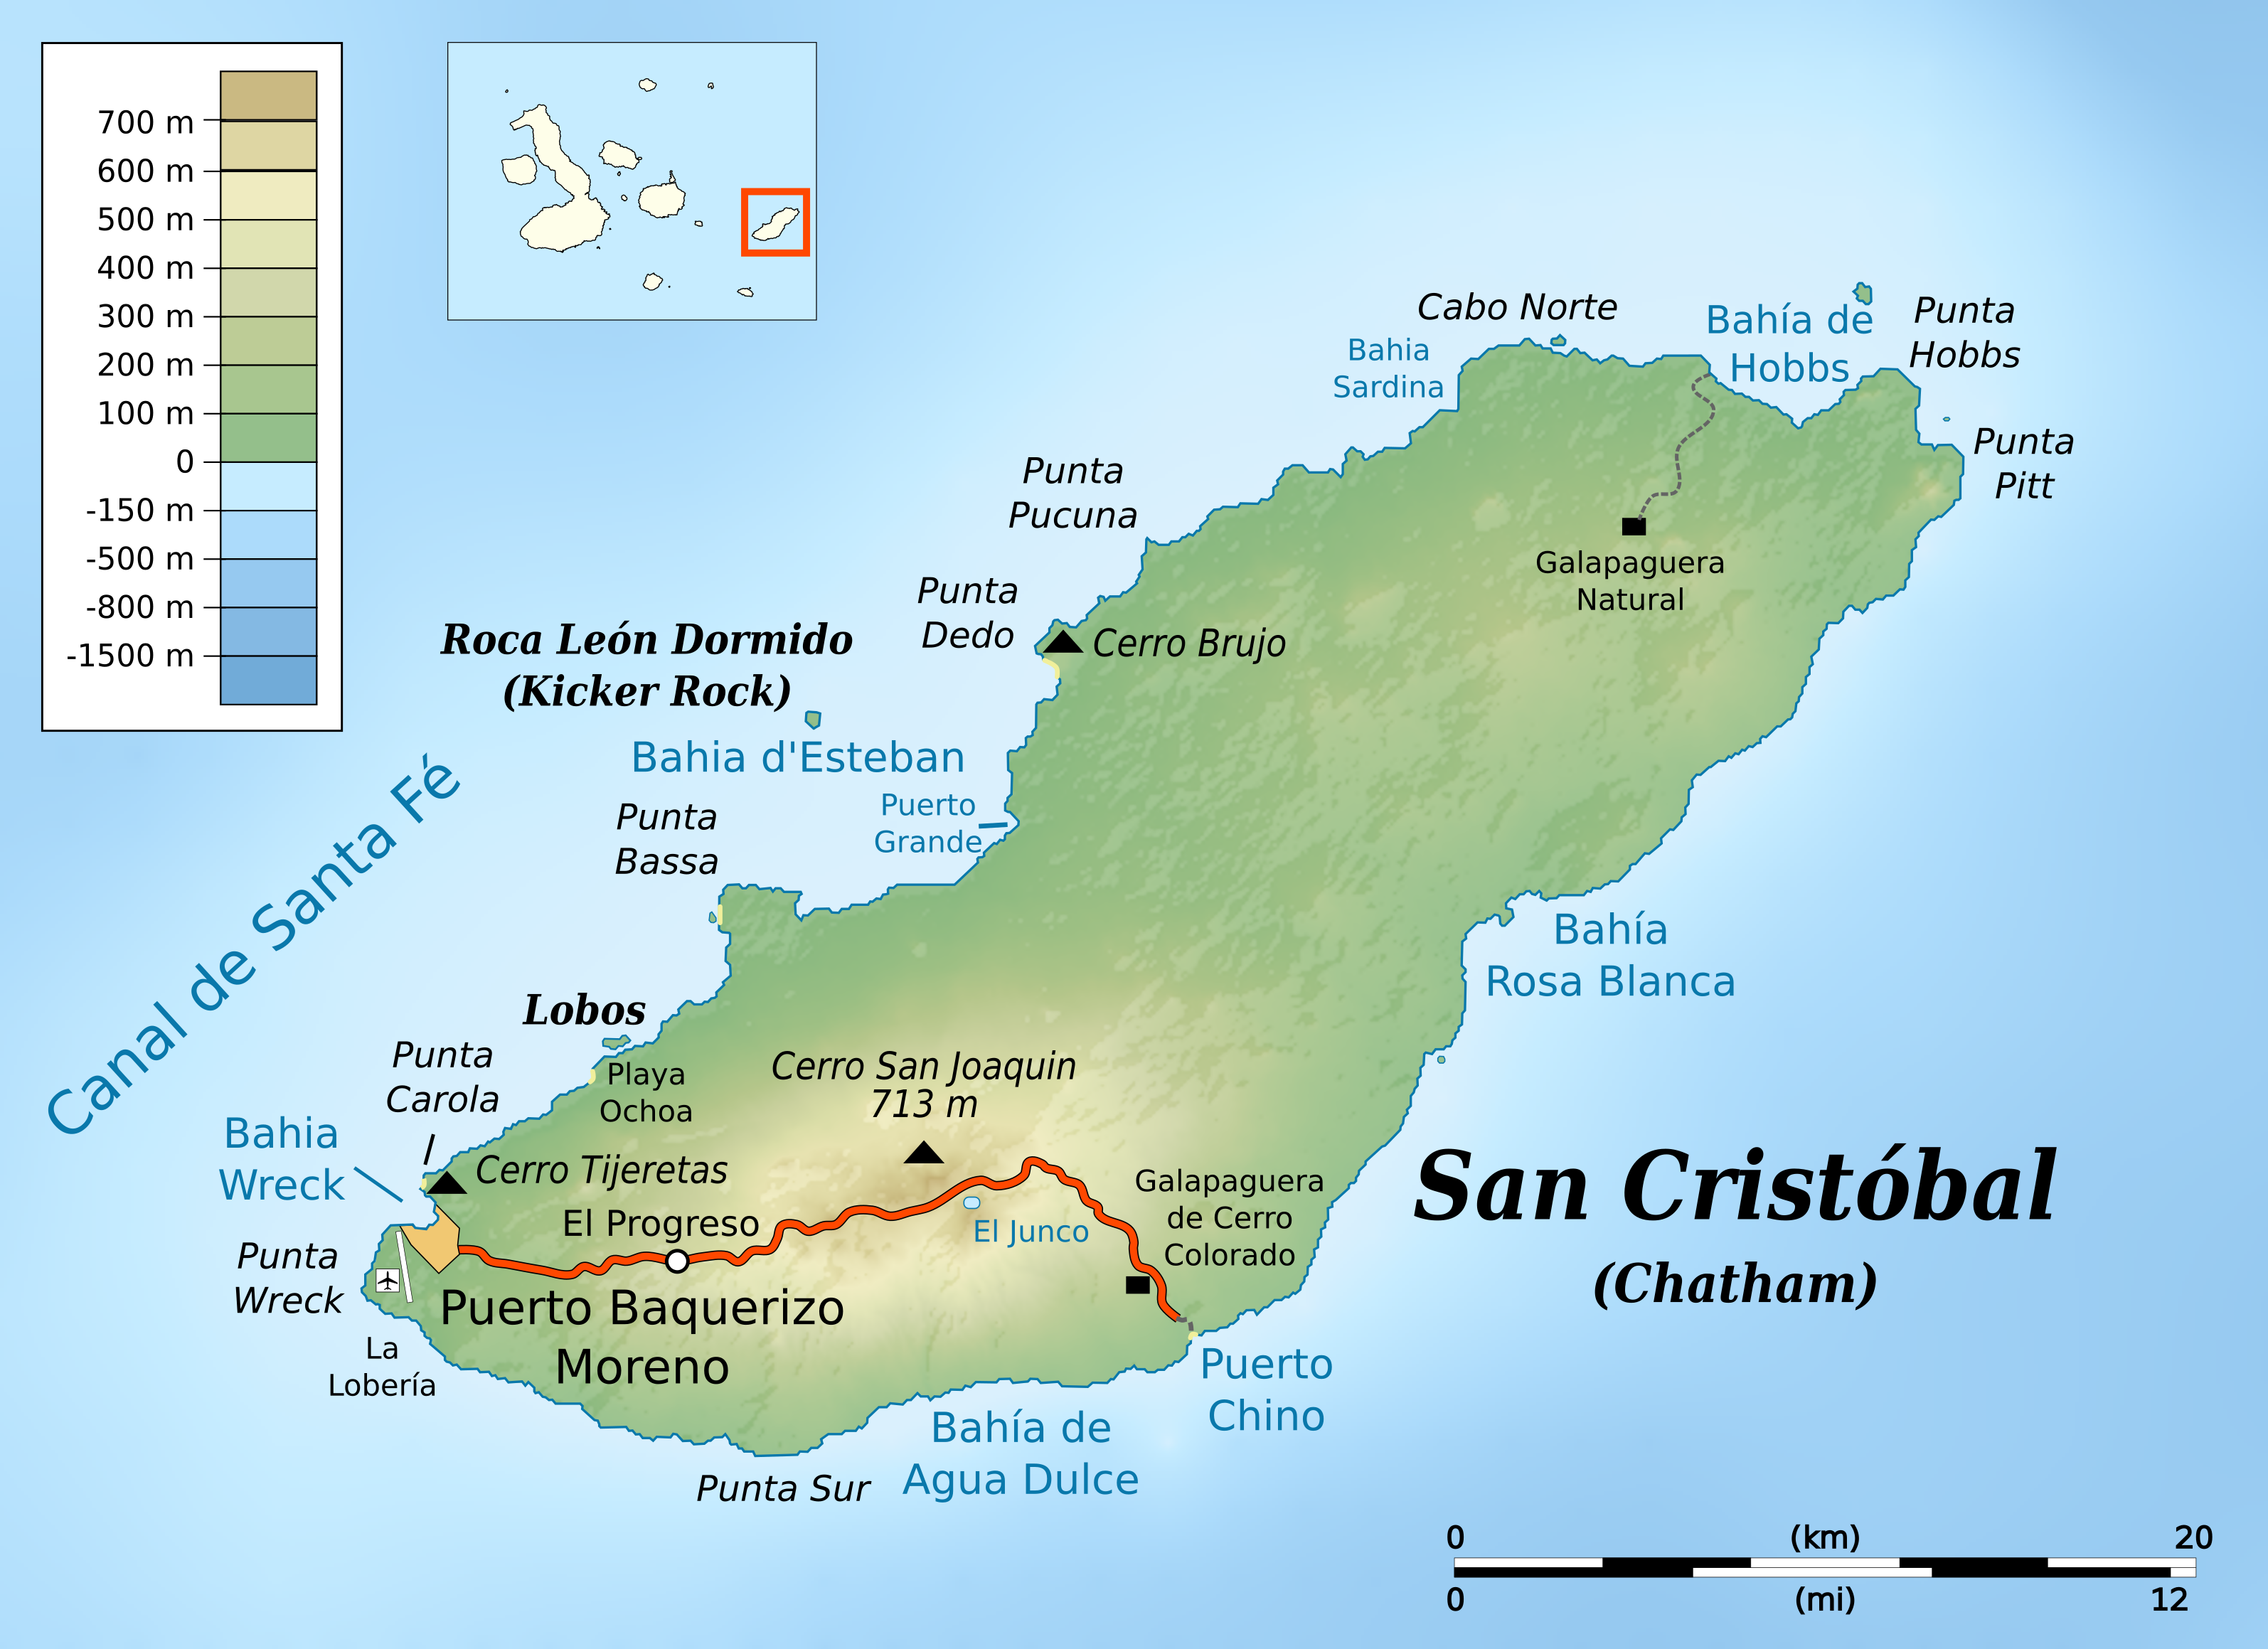 san cristobal dating The dating scene in san cristobal de las casas doesn't need to be confusing all you need to do is jump online with datewhoyouwant to find sexy singles living in your area.